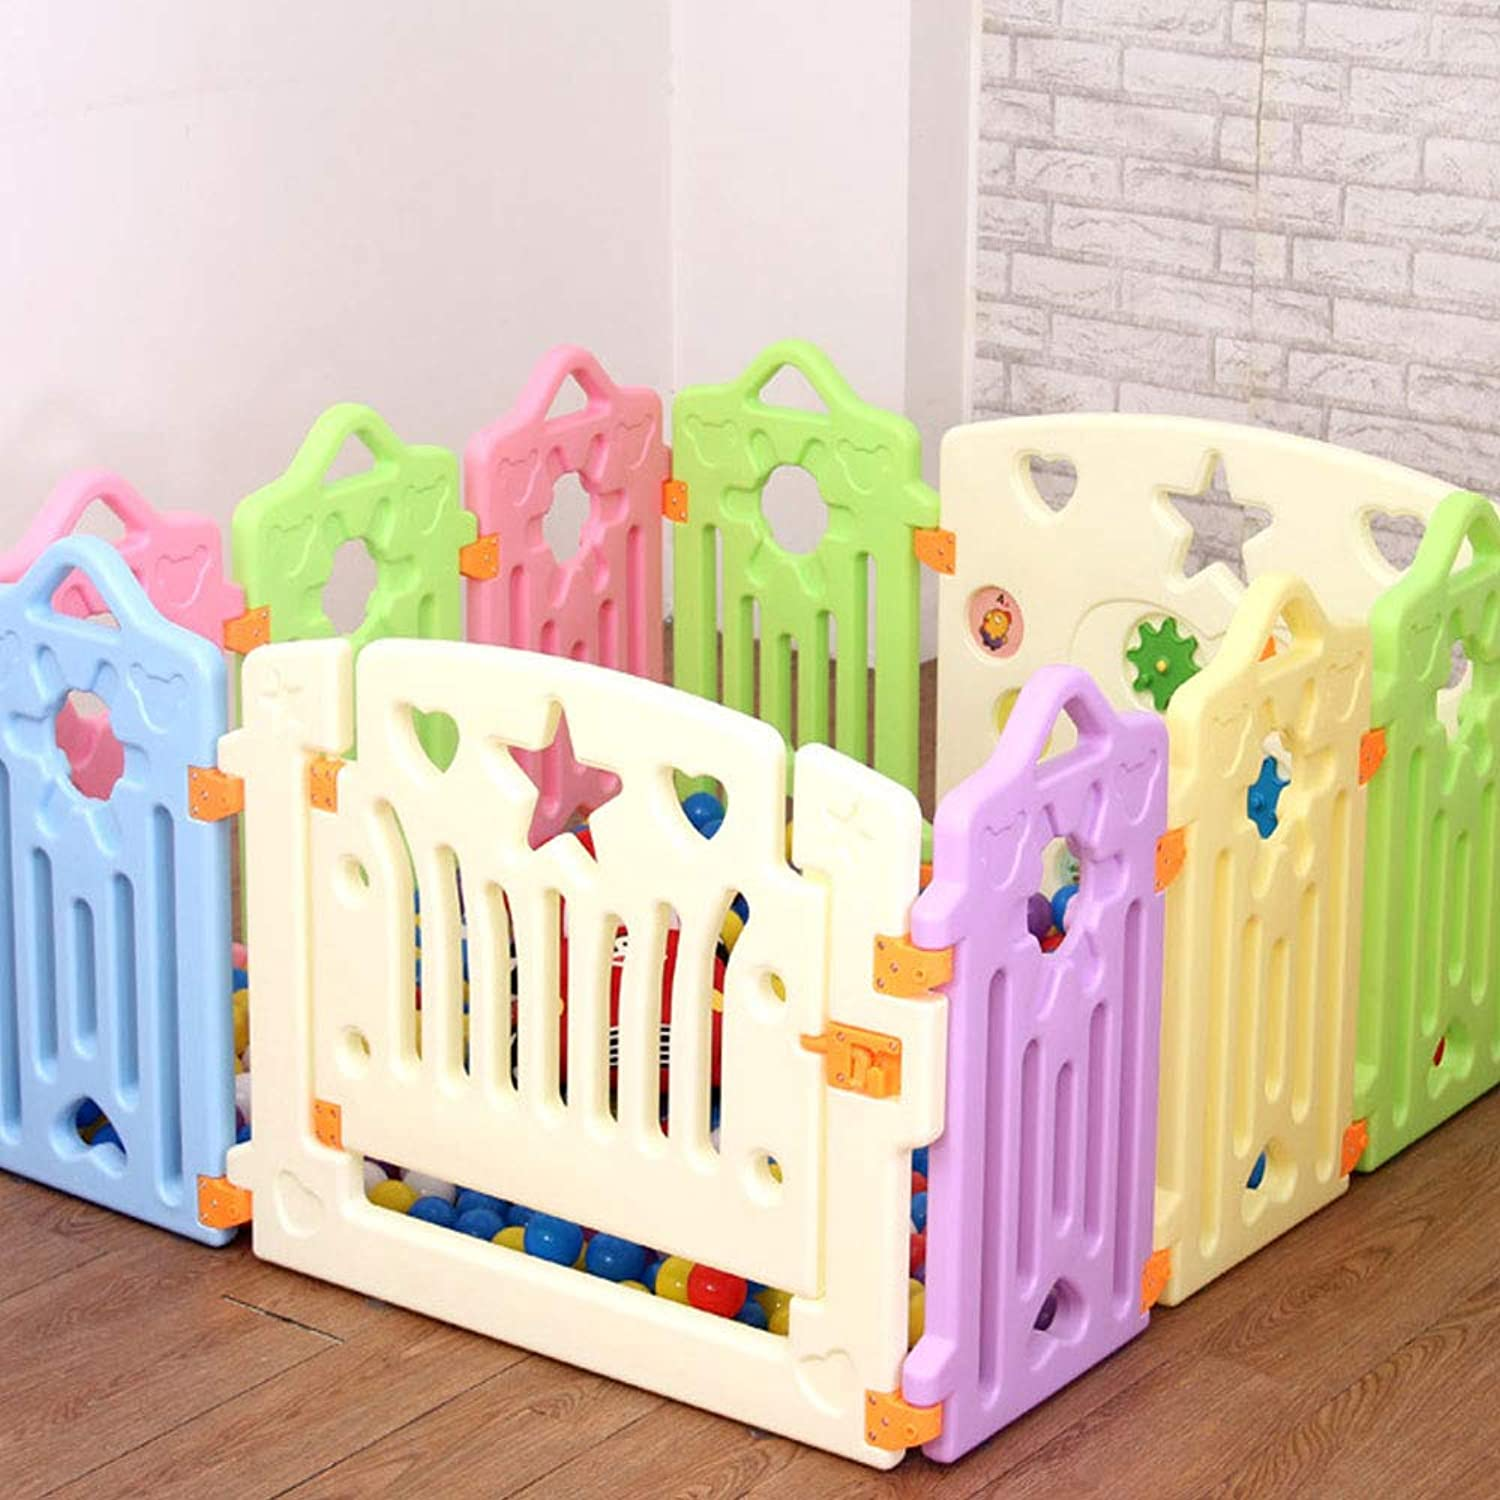 Fence Baby Crawling Baby Toddler Safety Fence Indoor Toy Door bar Uns (UnitCount   8 Pieces)